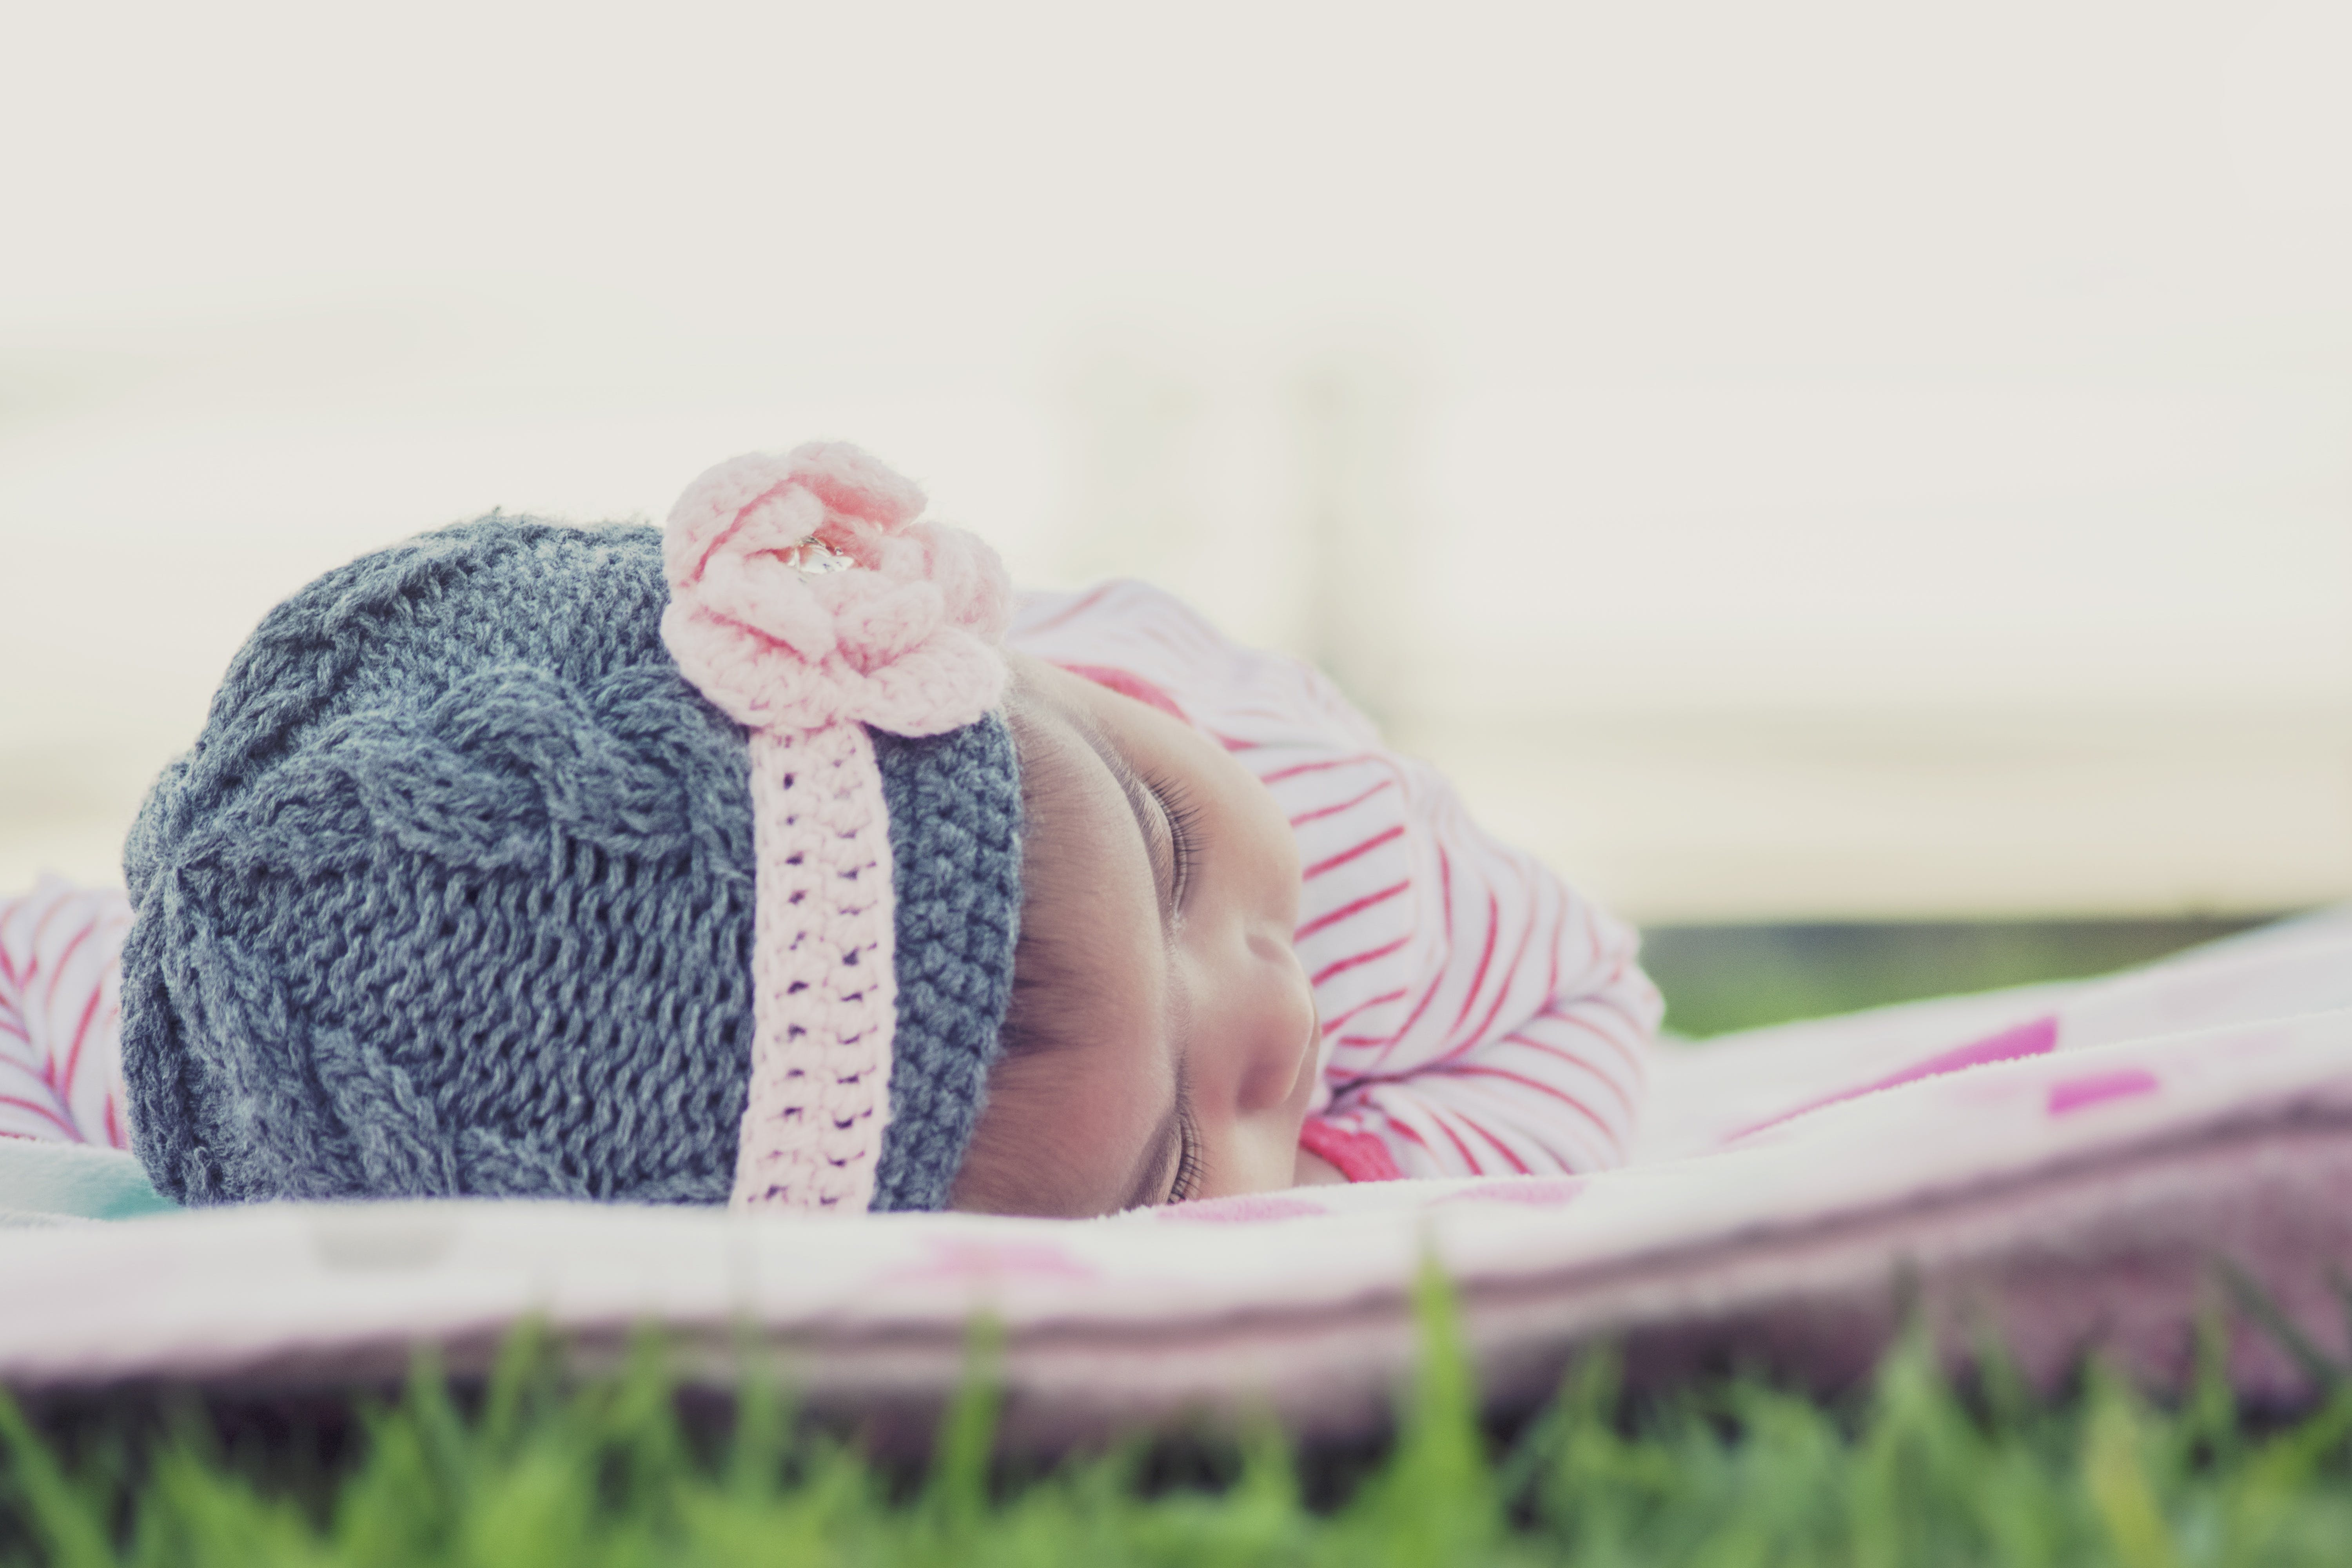 Free stock photo of young, pink, tired, baby